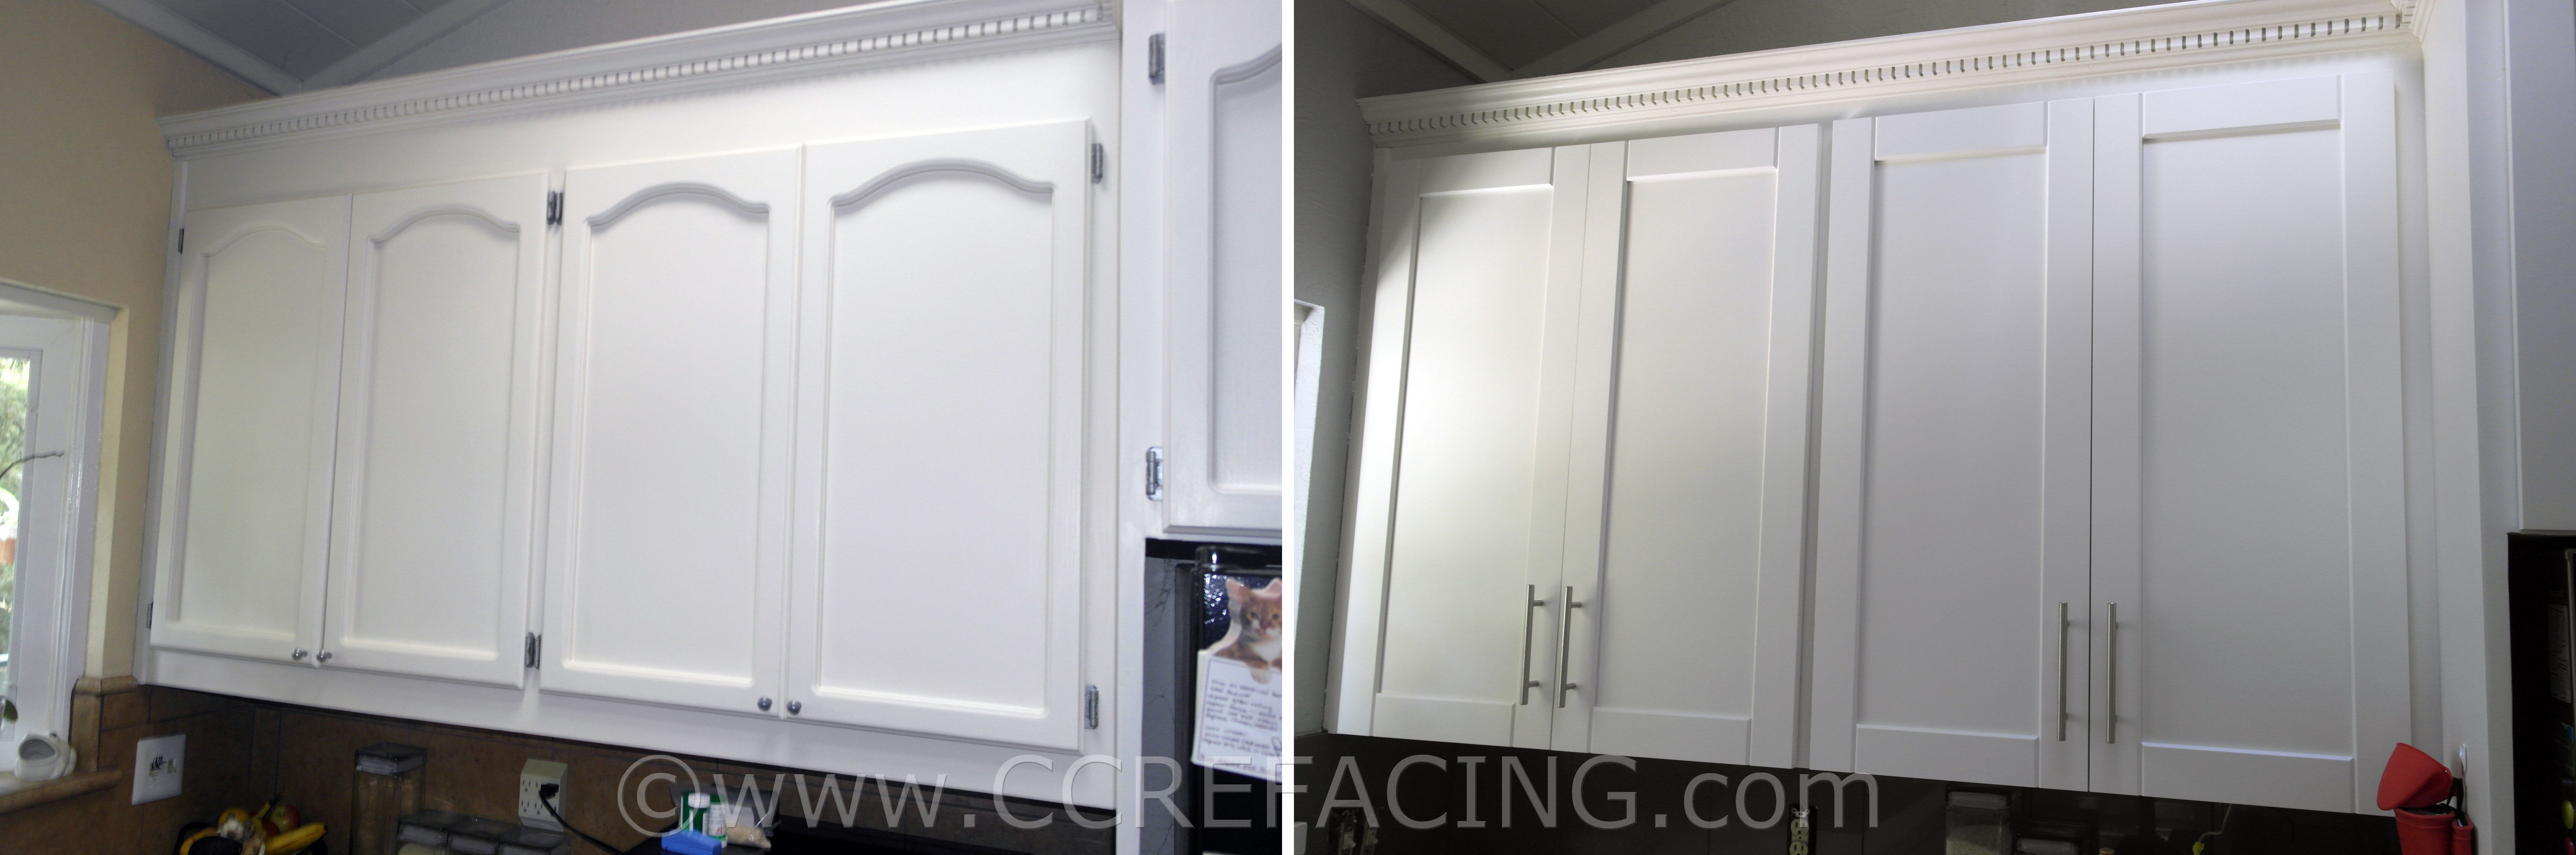 San Leandro reface refacing with White Shaker cabinet doors